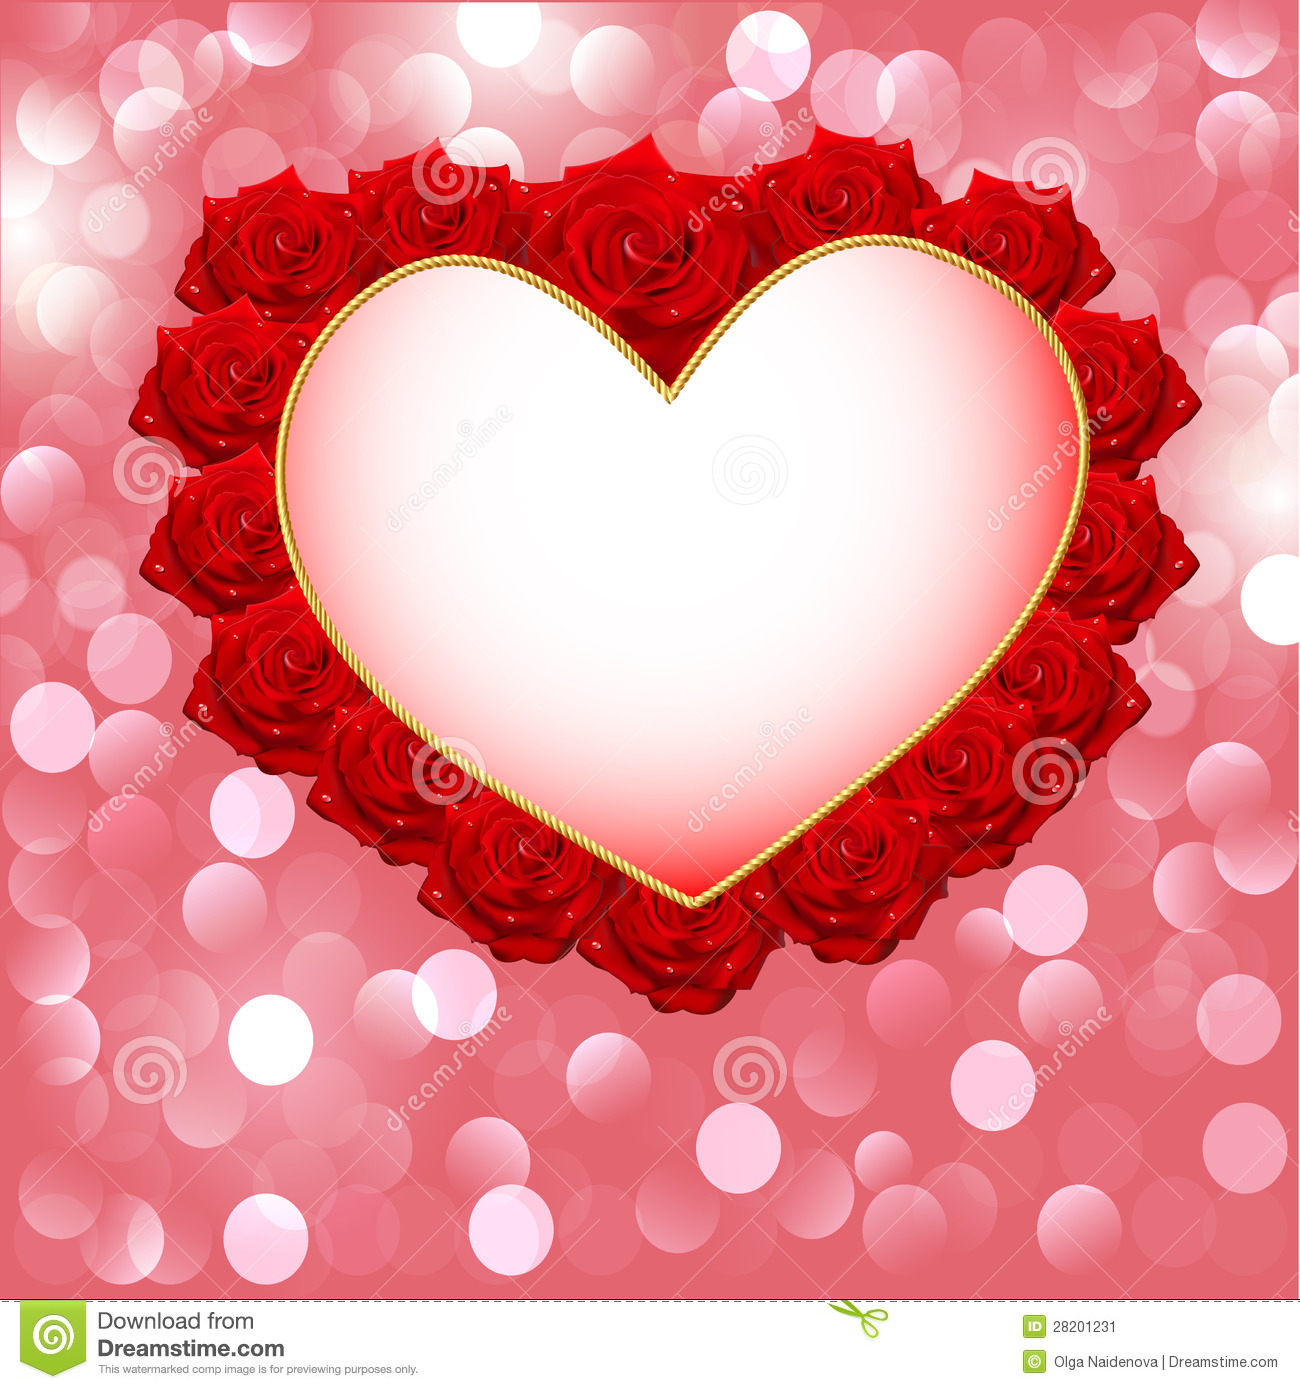 Background with heart made of roses for wedding invitation for Love in design